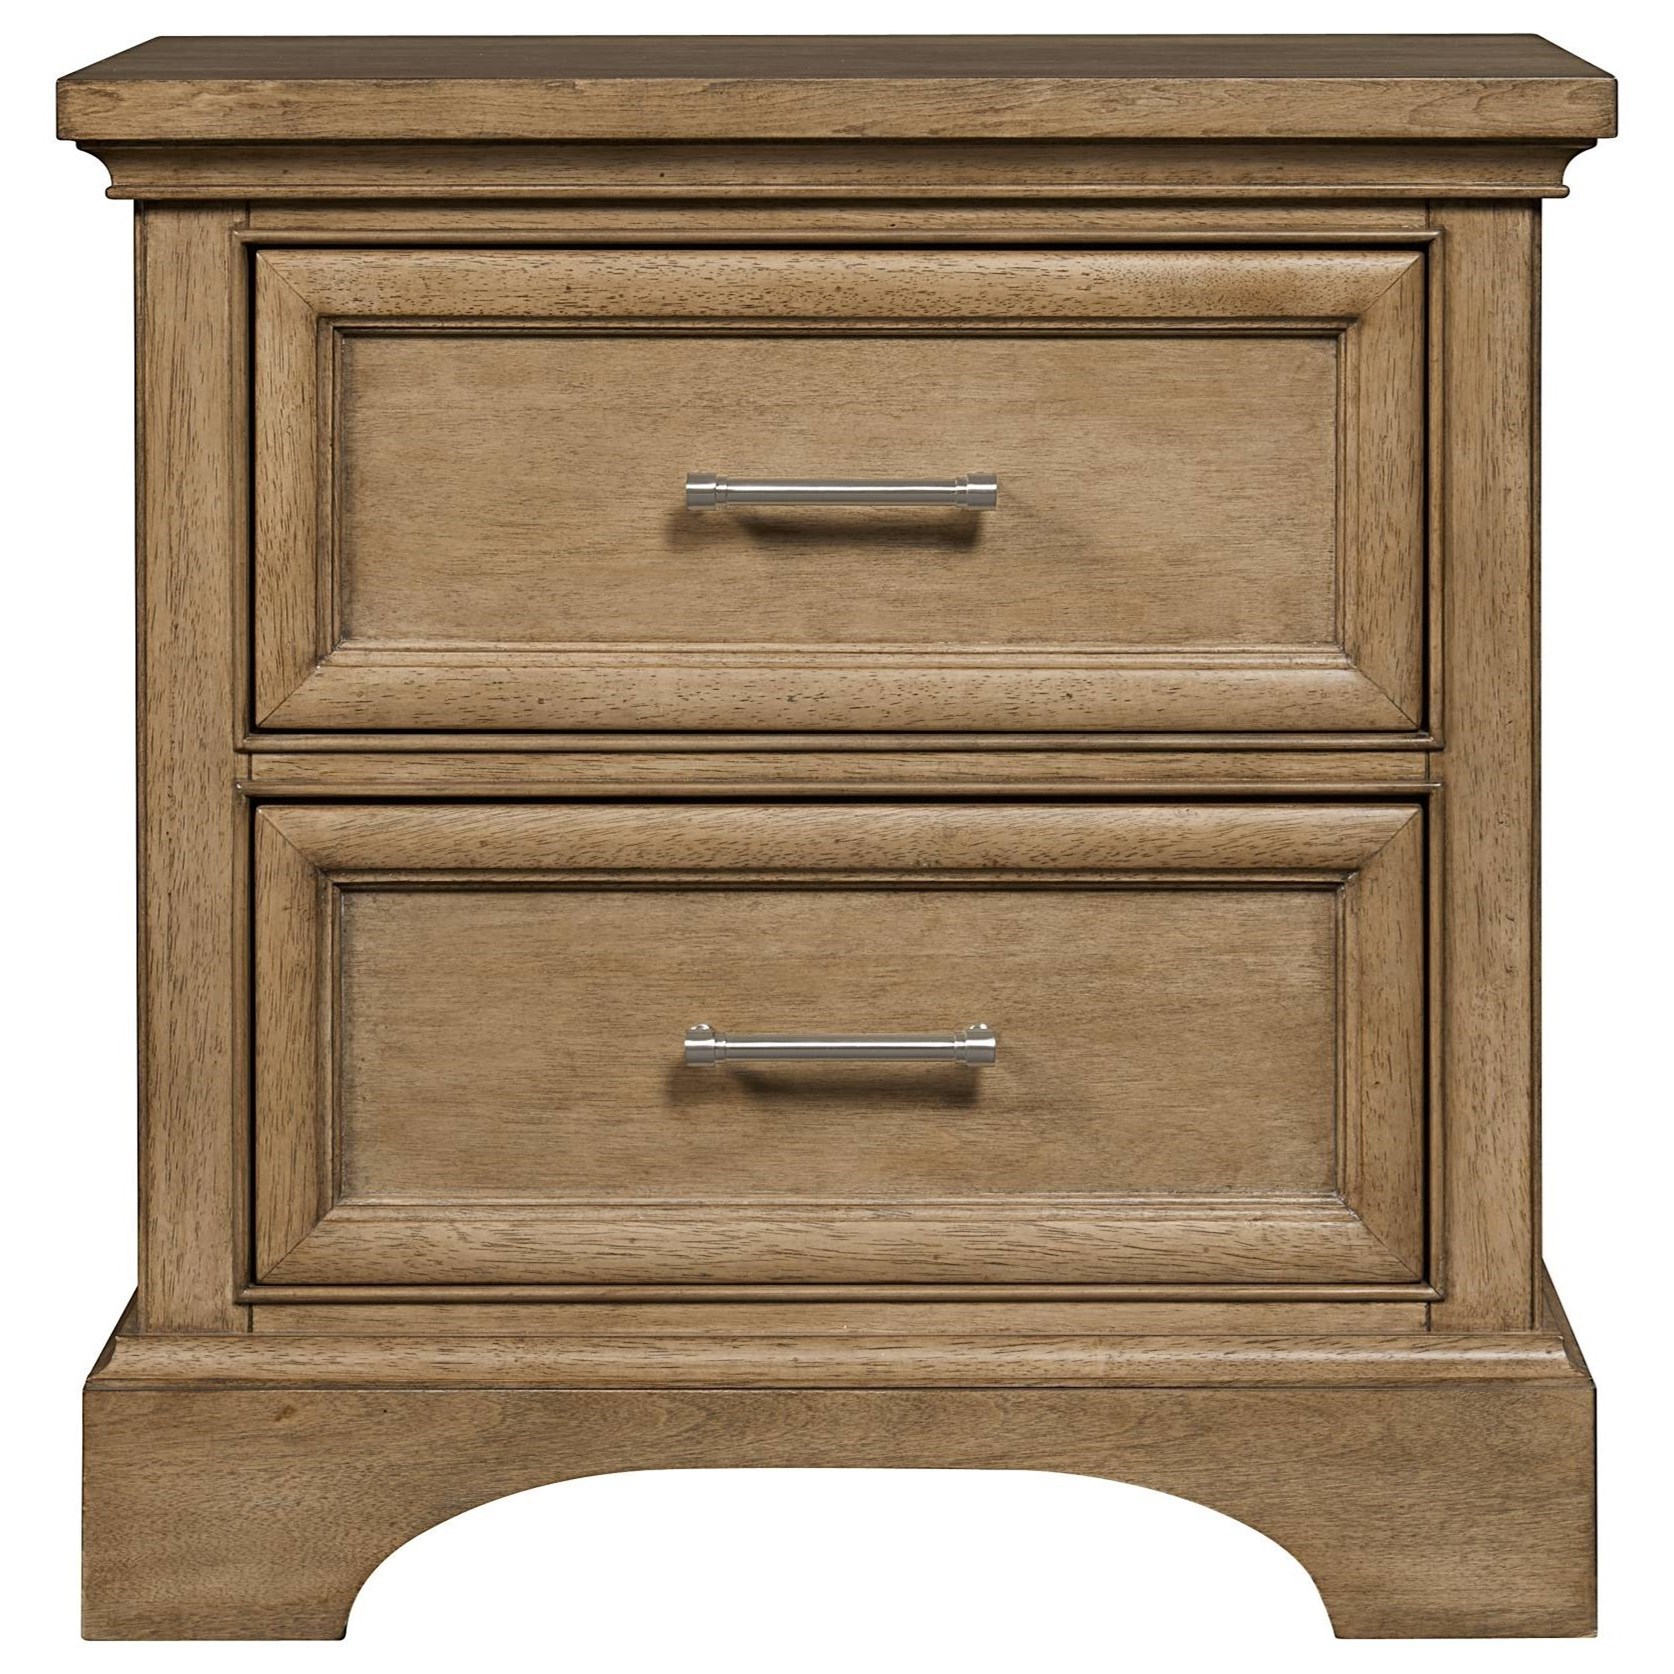 Stone & Leigh Furniture Chelsea Square Nightstand - Item Number: 584-63-82